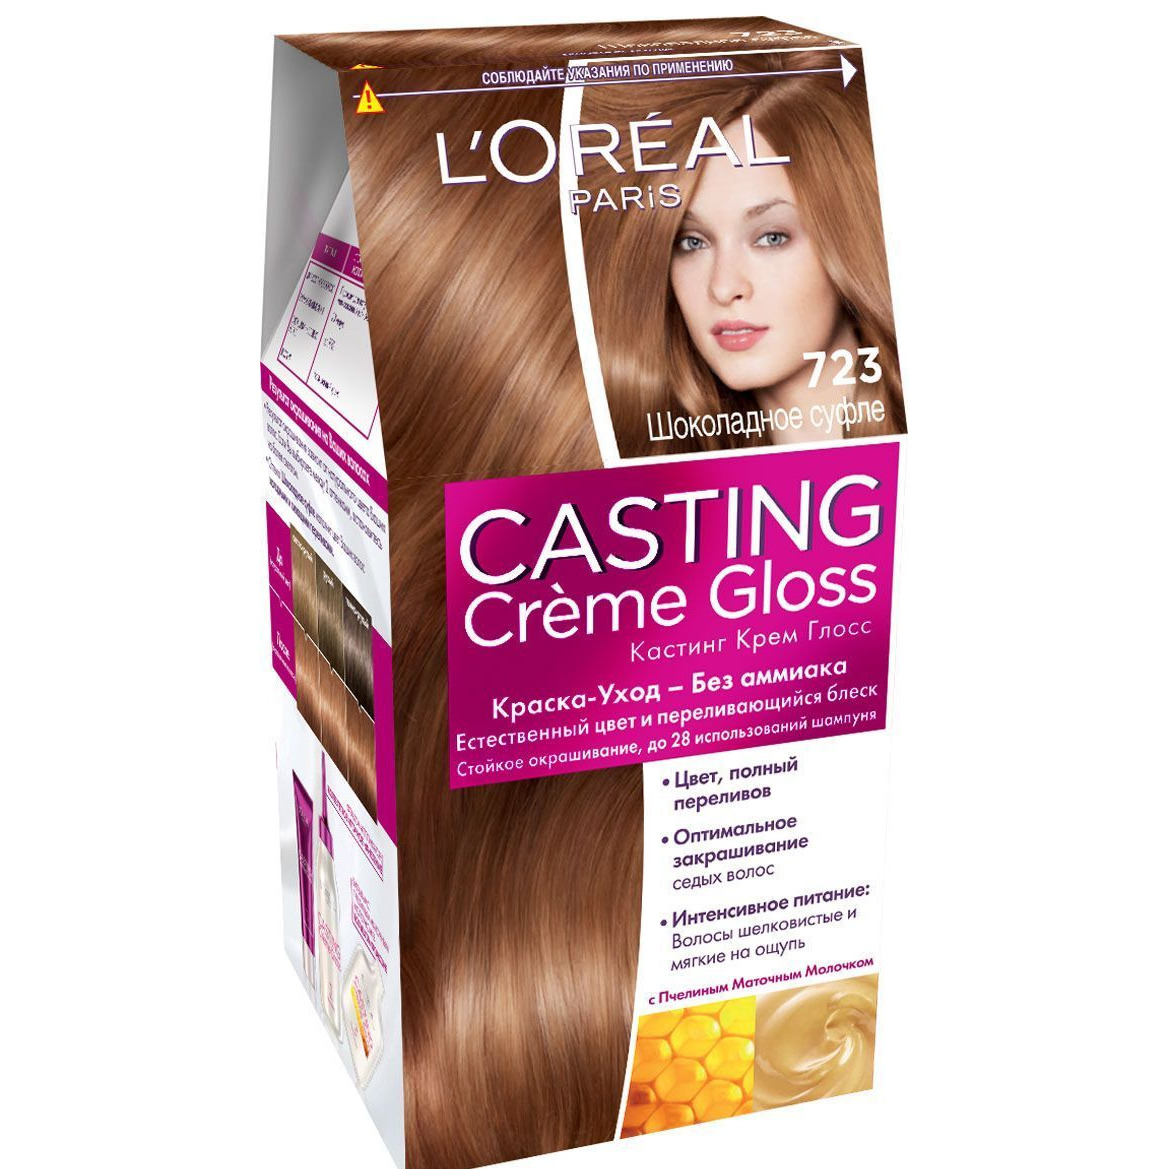 Loreal Casting Creme Gloss Hair Color Cream Tone 723 Chocolate